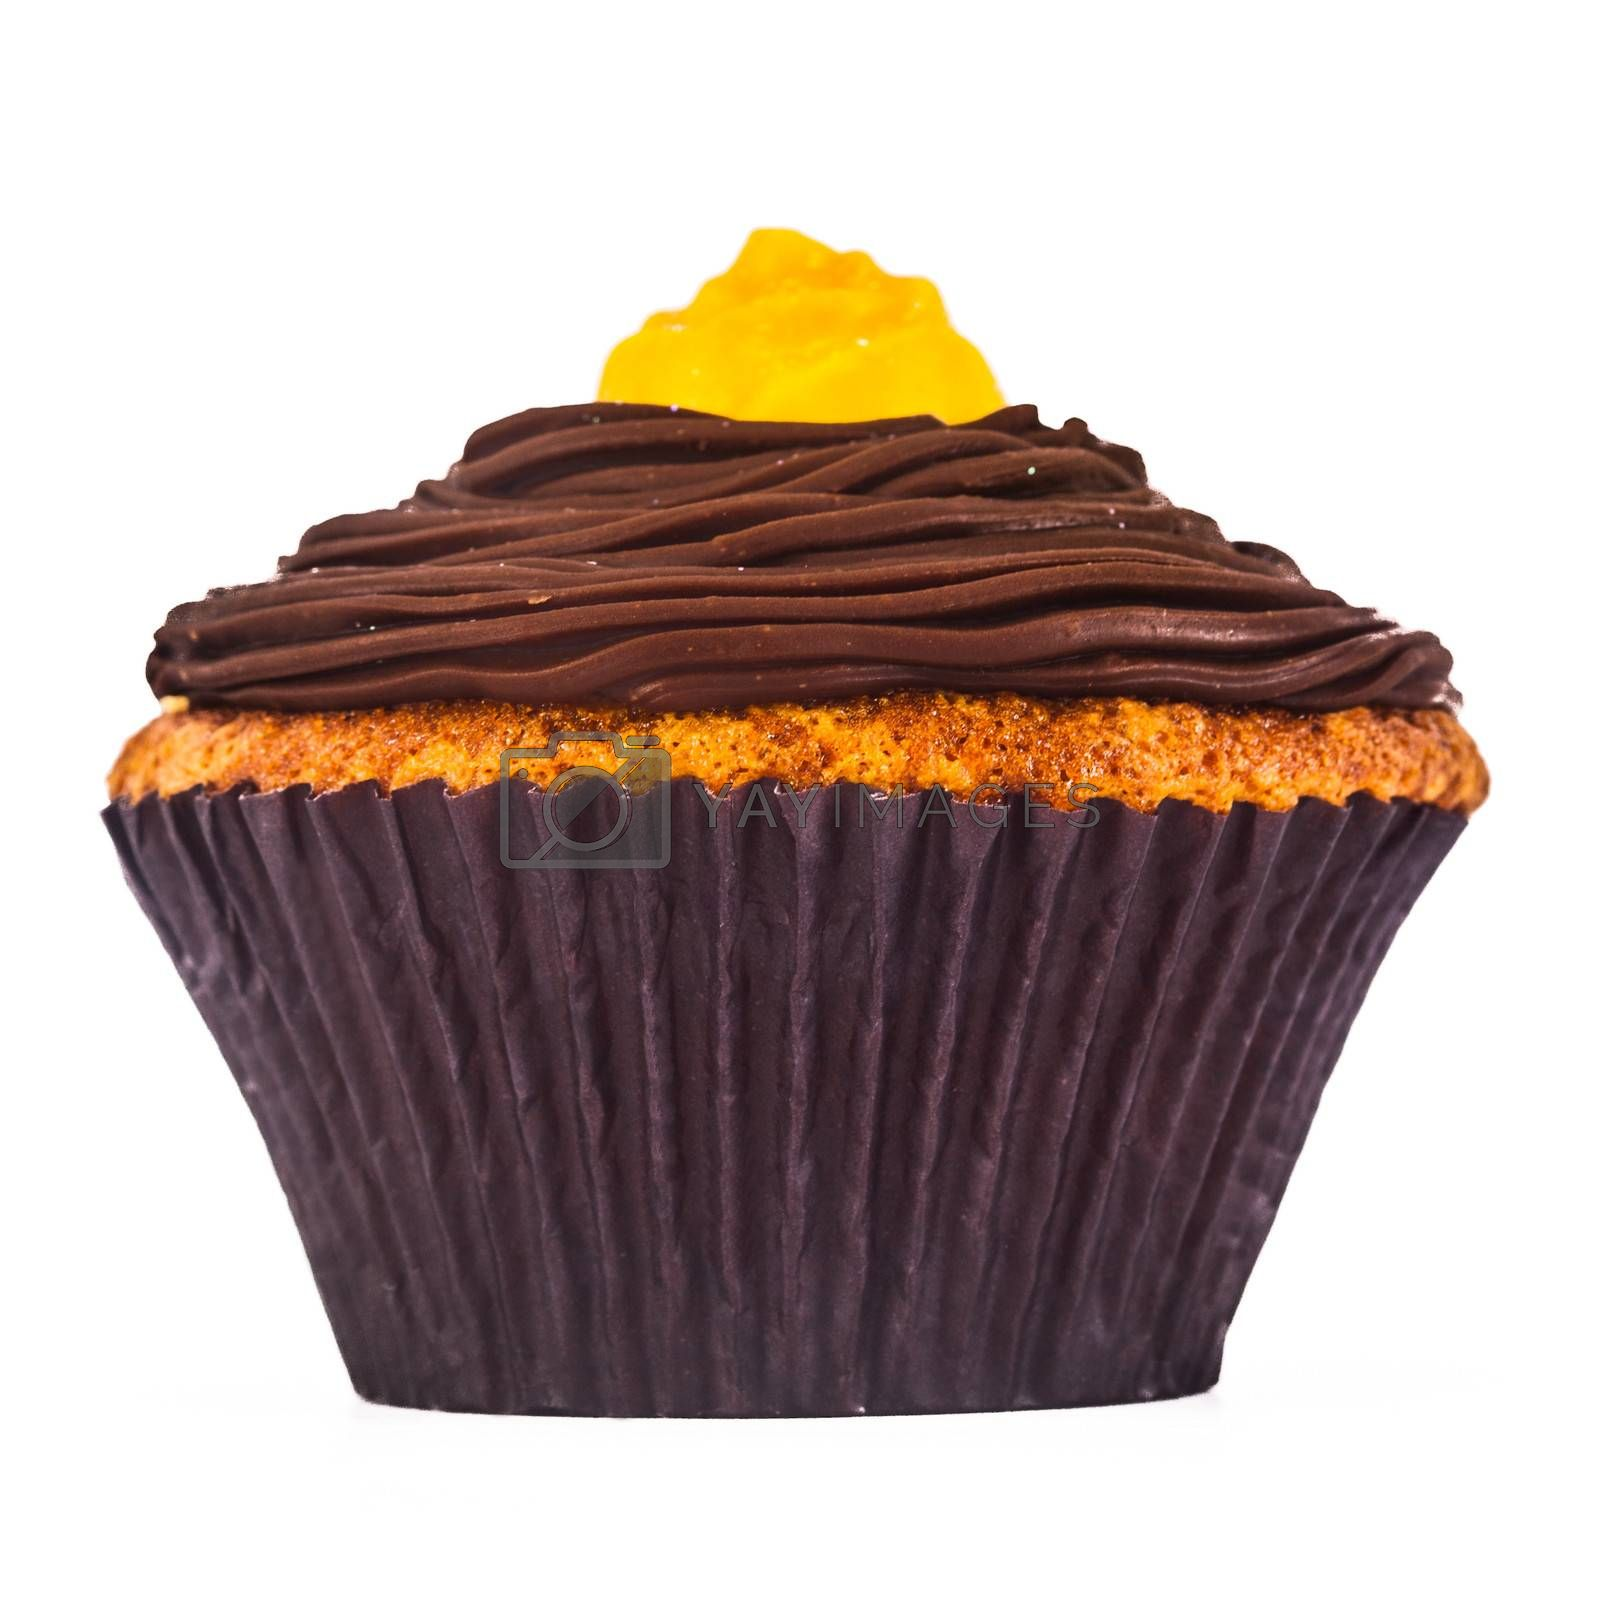 A gorgeous and delicious chocolate and carrot cupcake isolated on a white background.